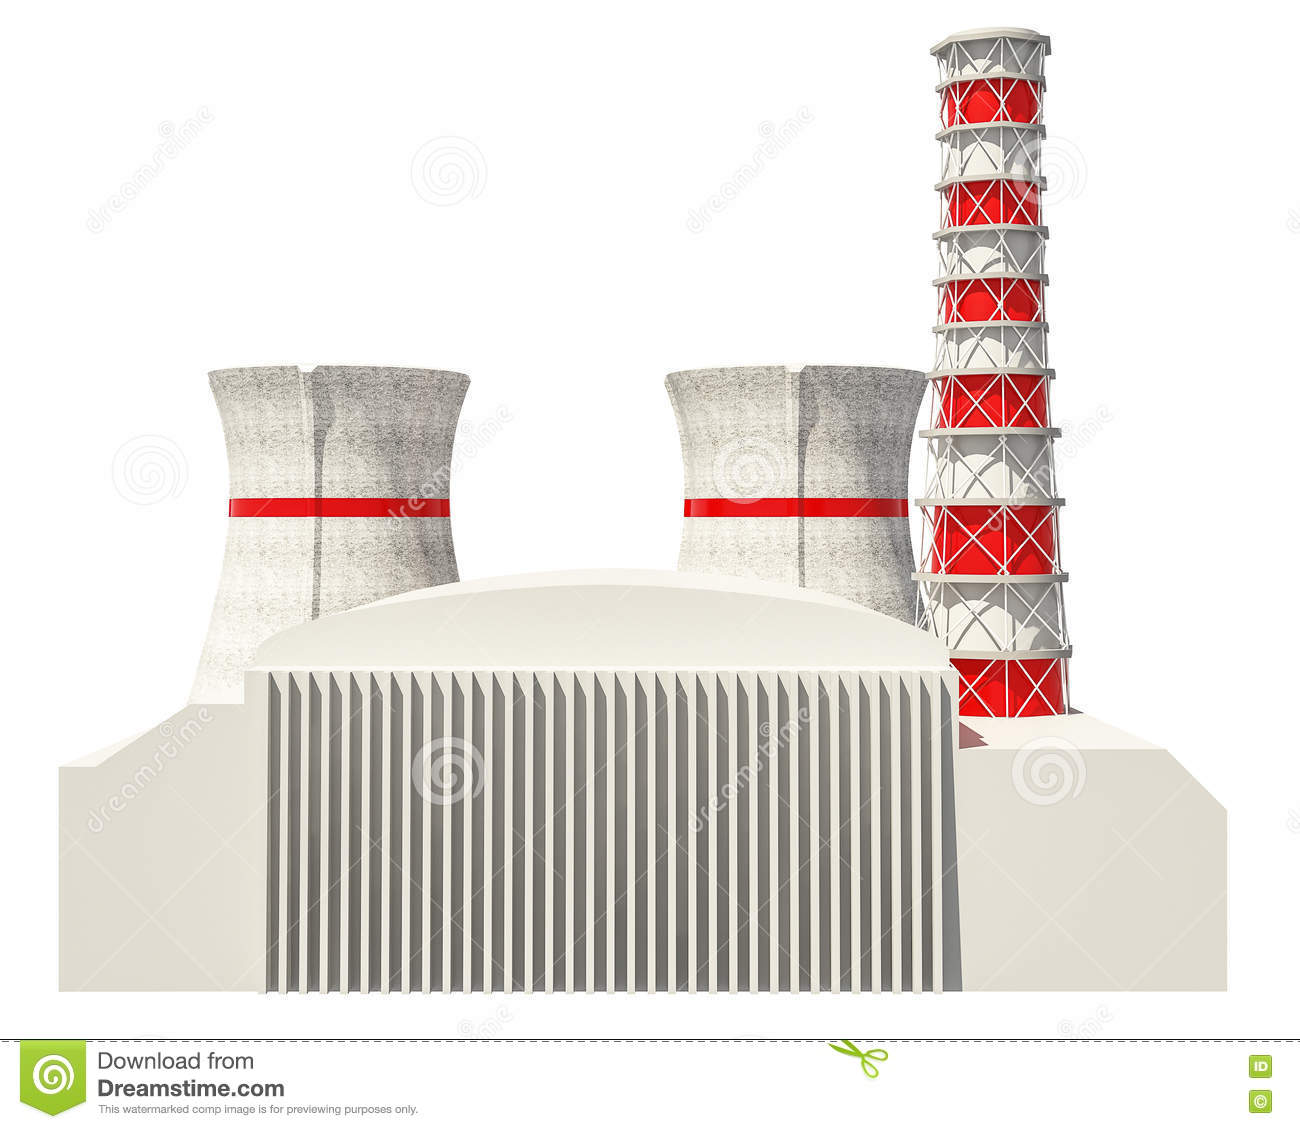 3d Illustration Of Nuclear Power Station Stock Illustration Illustration Of Electricity Illustration 73420135,Nordli Bed Frame With Storage Instructions